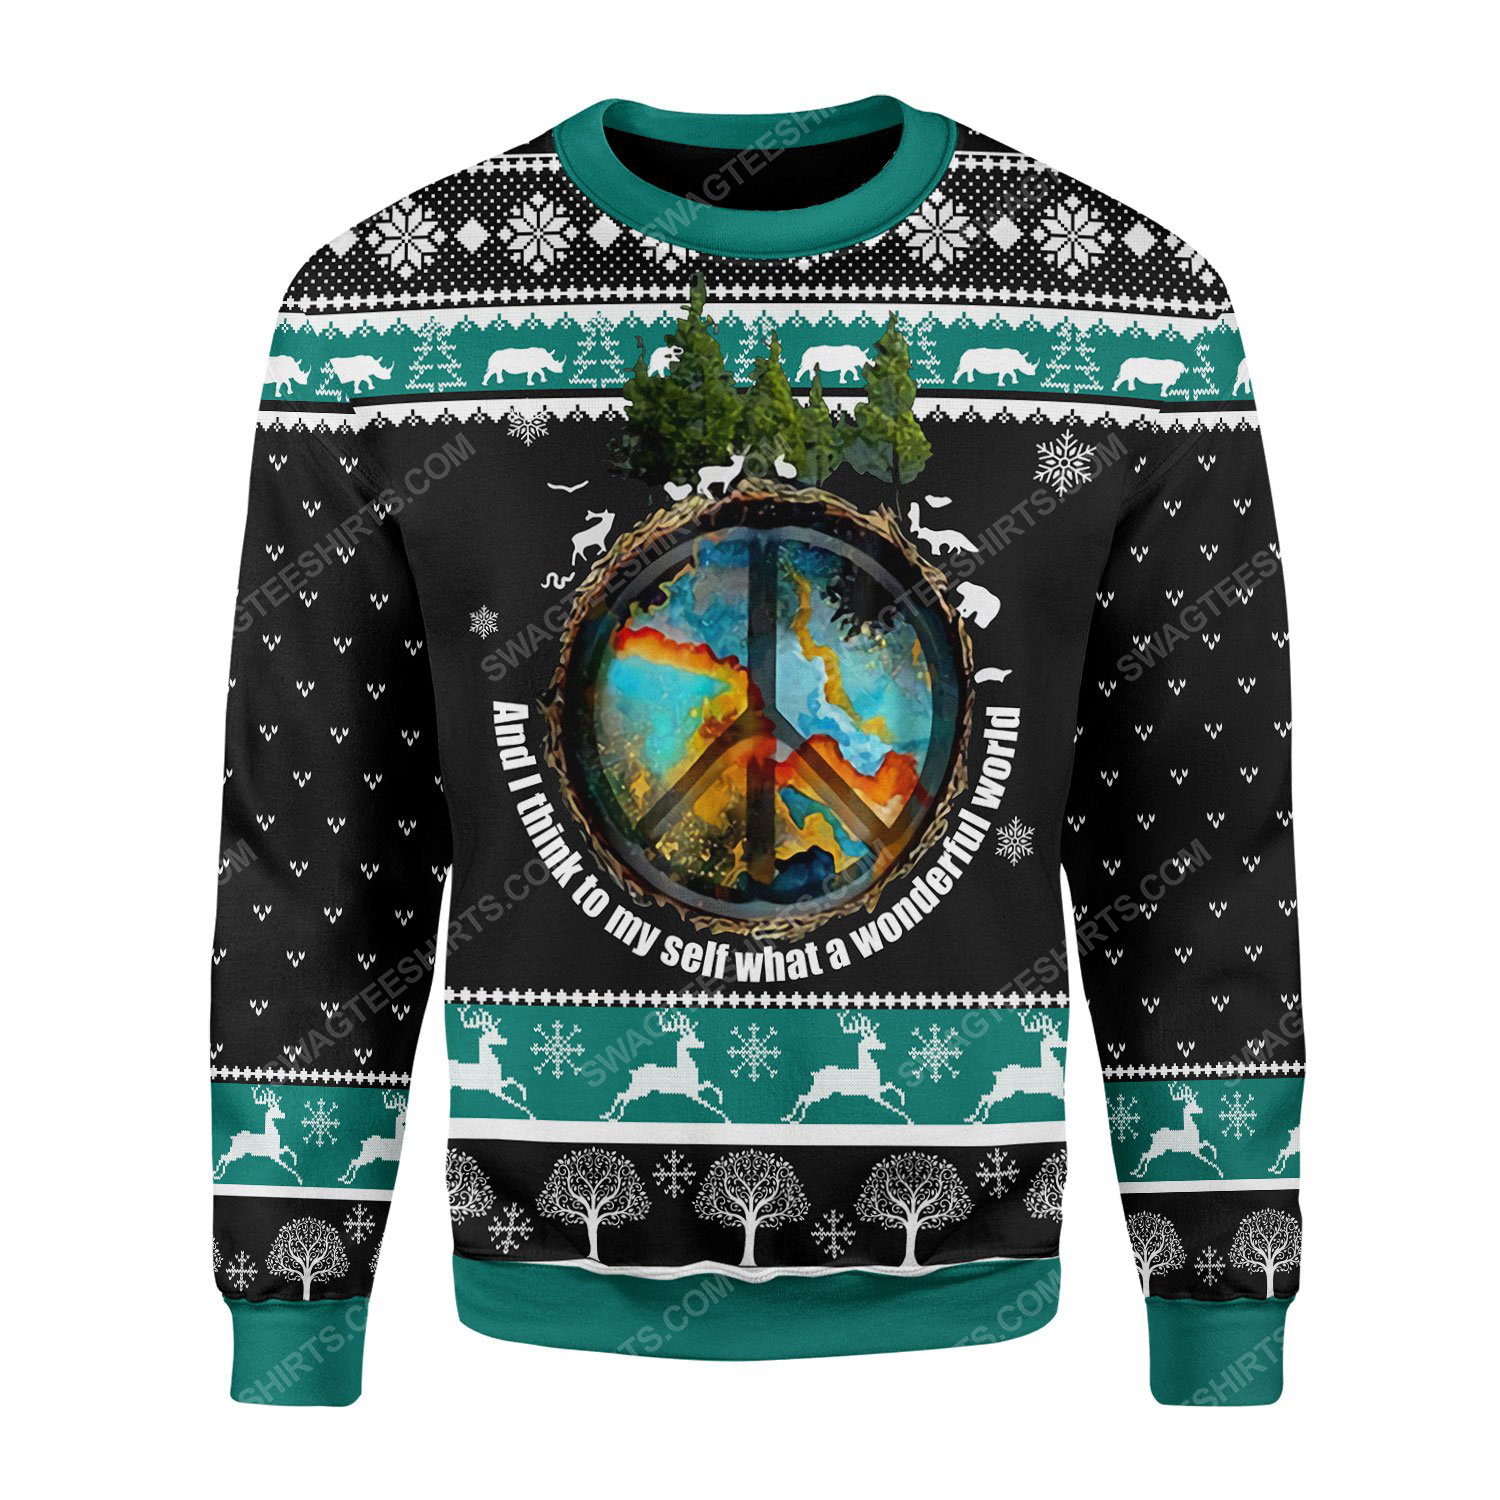 And i think to myself what a wonderful world ugly christmas sweater 2(1) - Copy